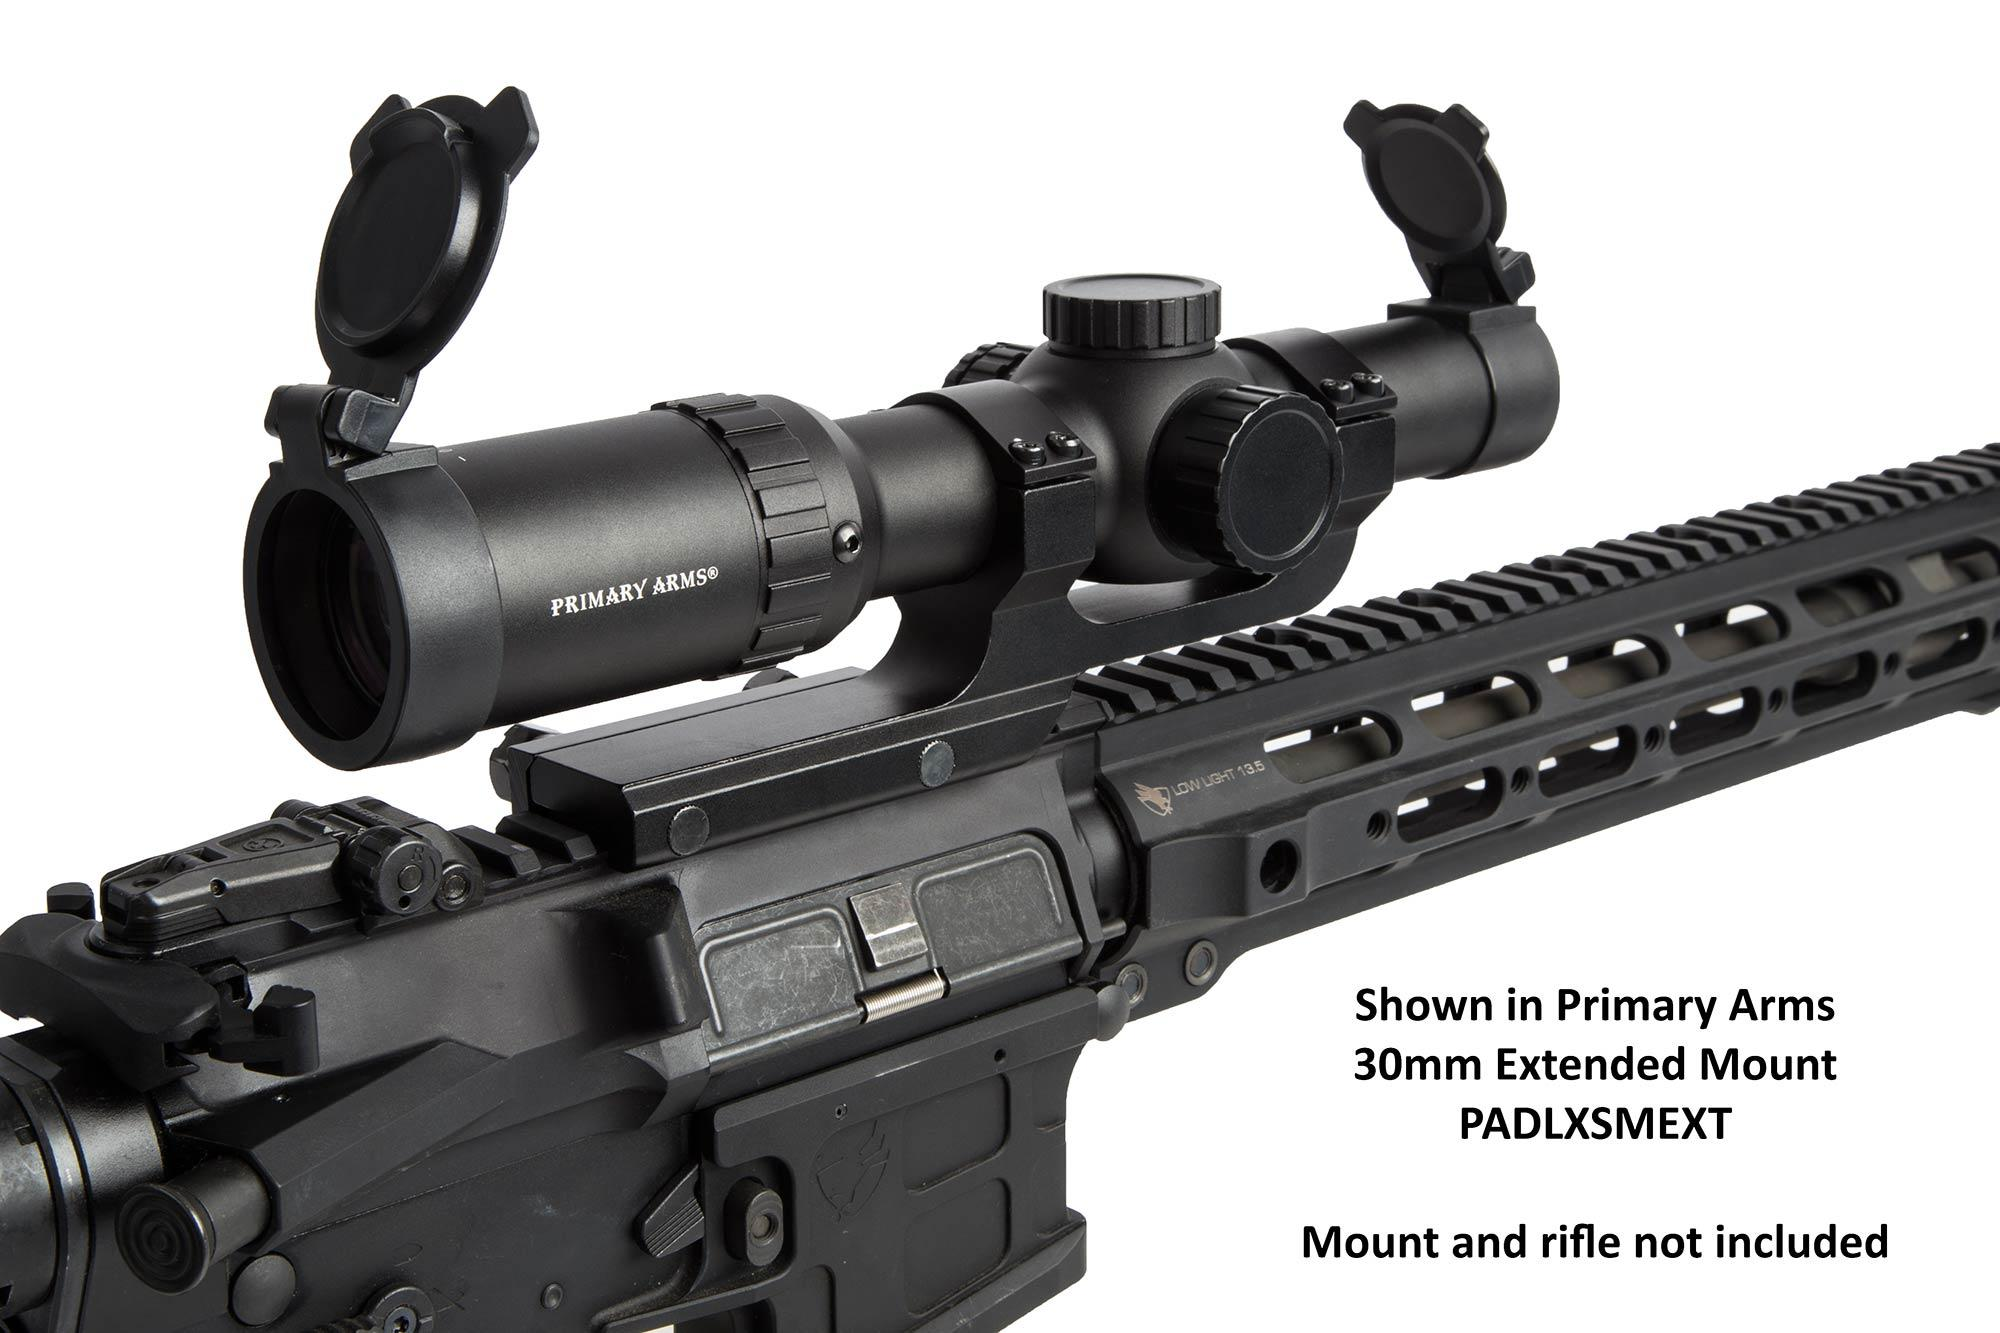 The Primary Arms 1-8 ACSS reticle has windage and elevation compensation markings